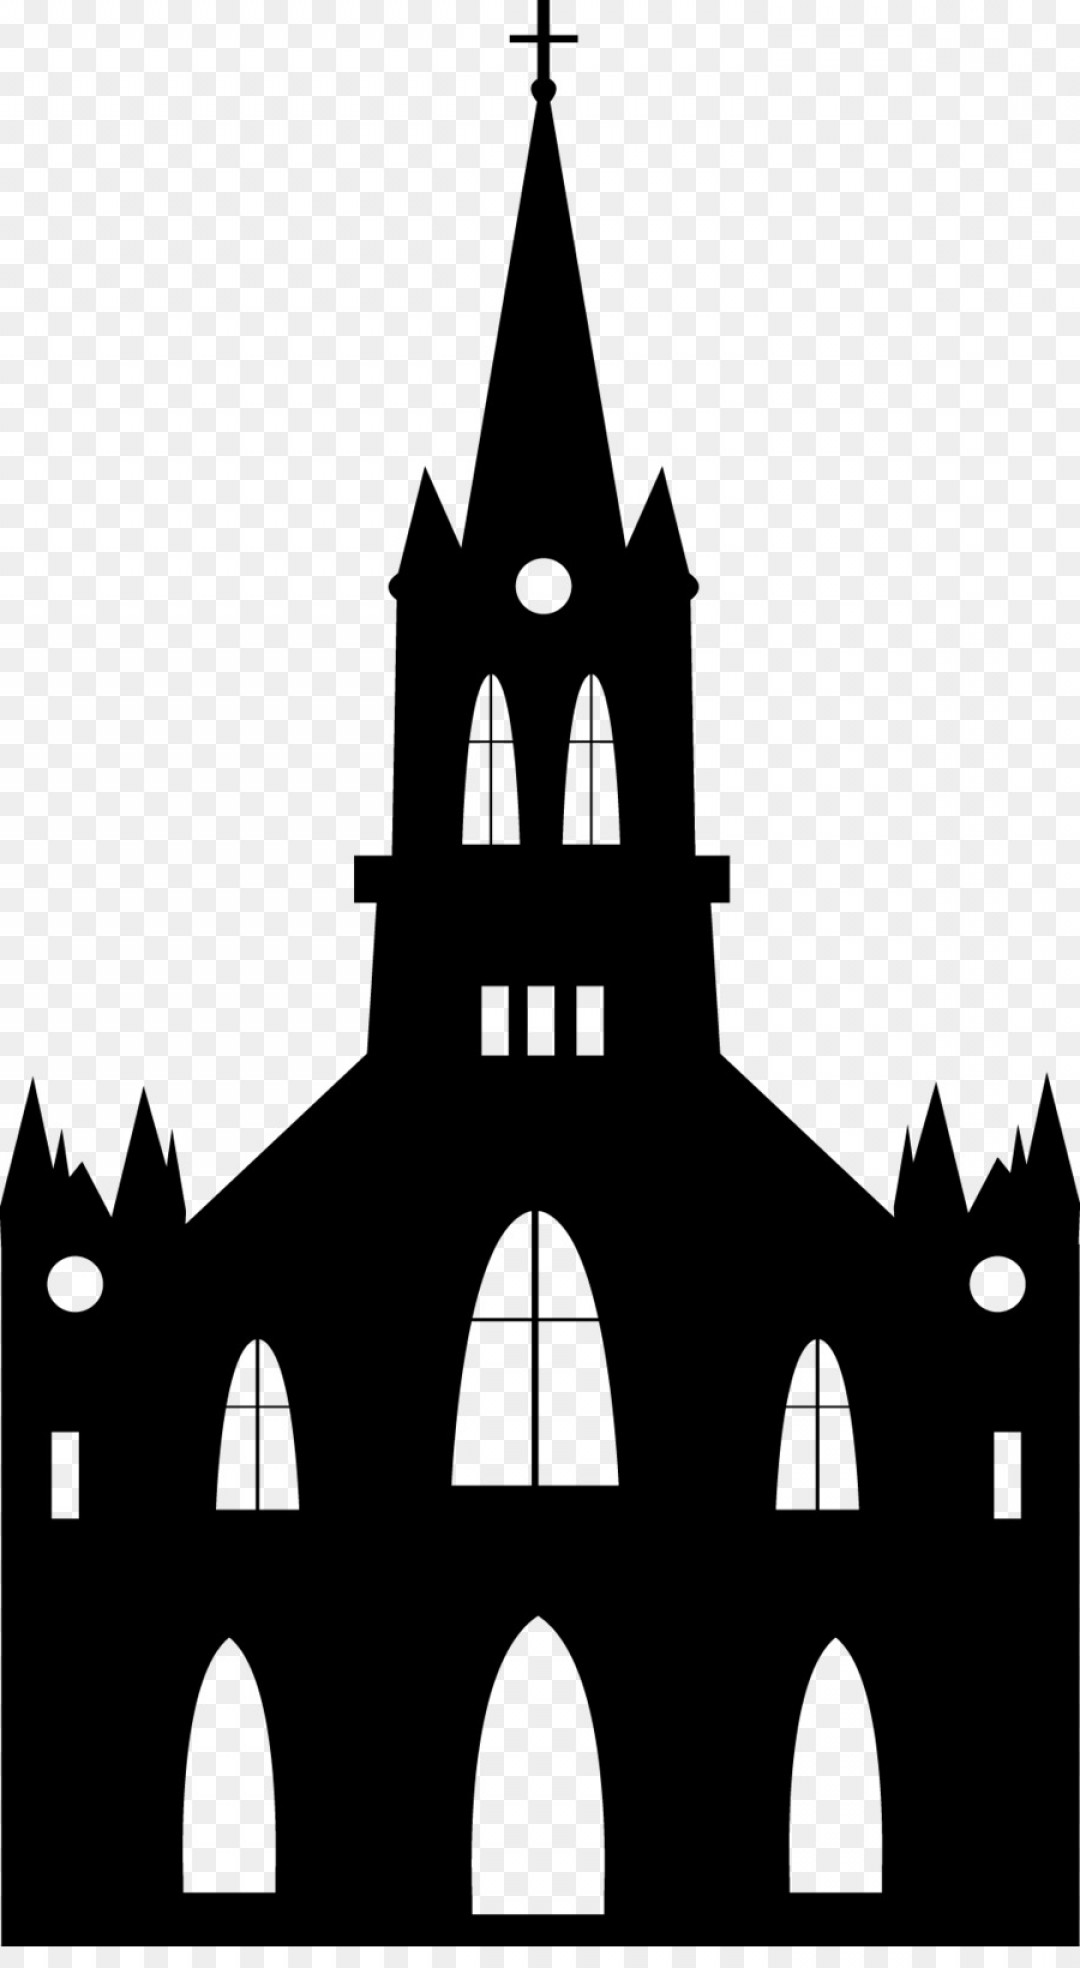 Church Silhouette Vector: Png Euclidean Vector Church Religion Silhouette Castle